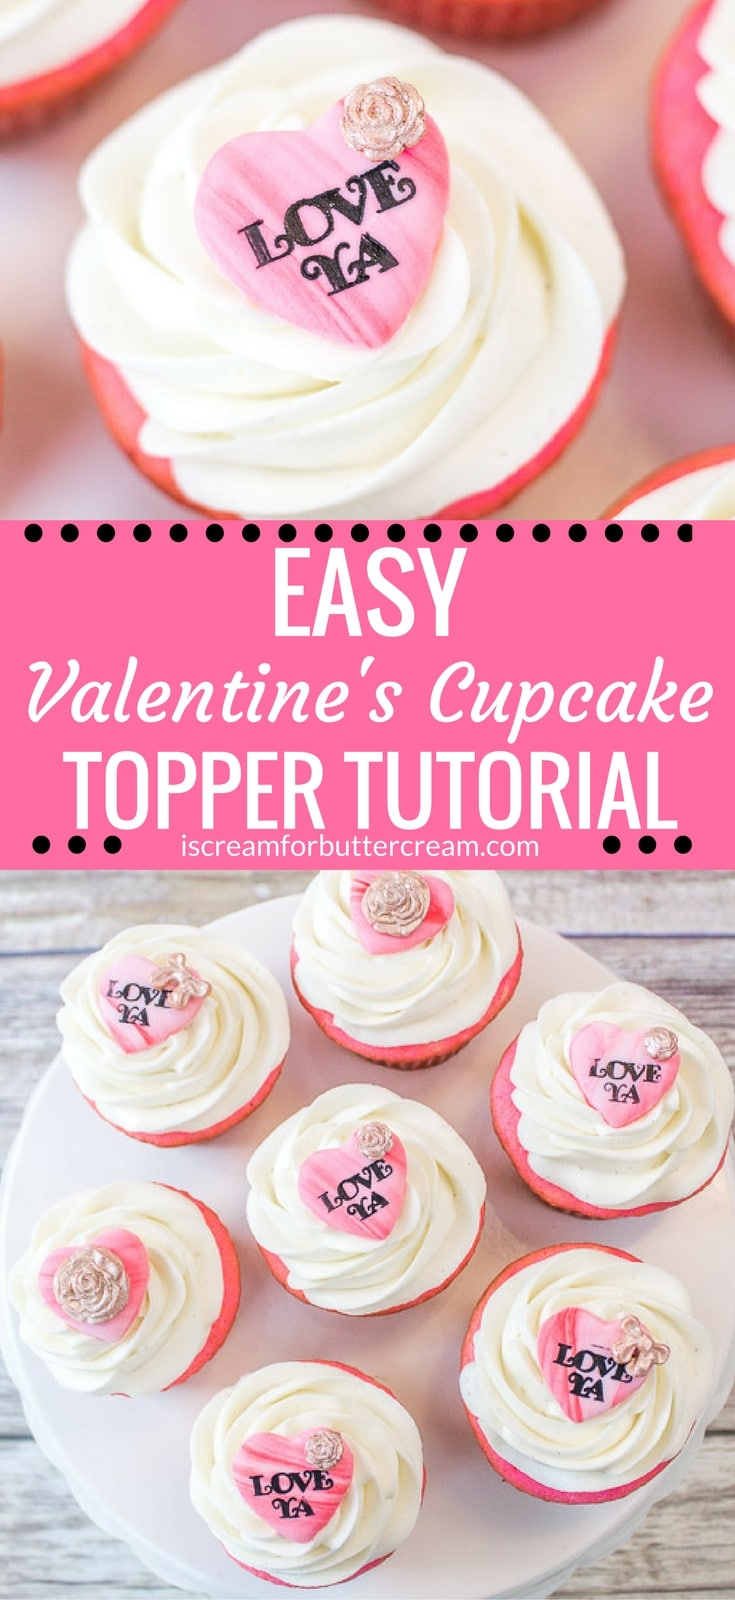 Maybe you don't have a lot of time on your hands, but you still want to make something cute for Valentine's Day.These Valentine's Cupcake Toppers are so easy to make and the nice thing is that you can make them ahead of time. Just pop them on your cupcakes before you serve them. #valentinescupcakes #heartcupcaketoppers #fondanttutorial #cupcakedecorating